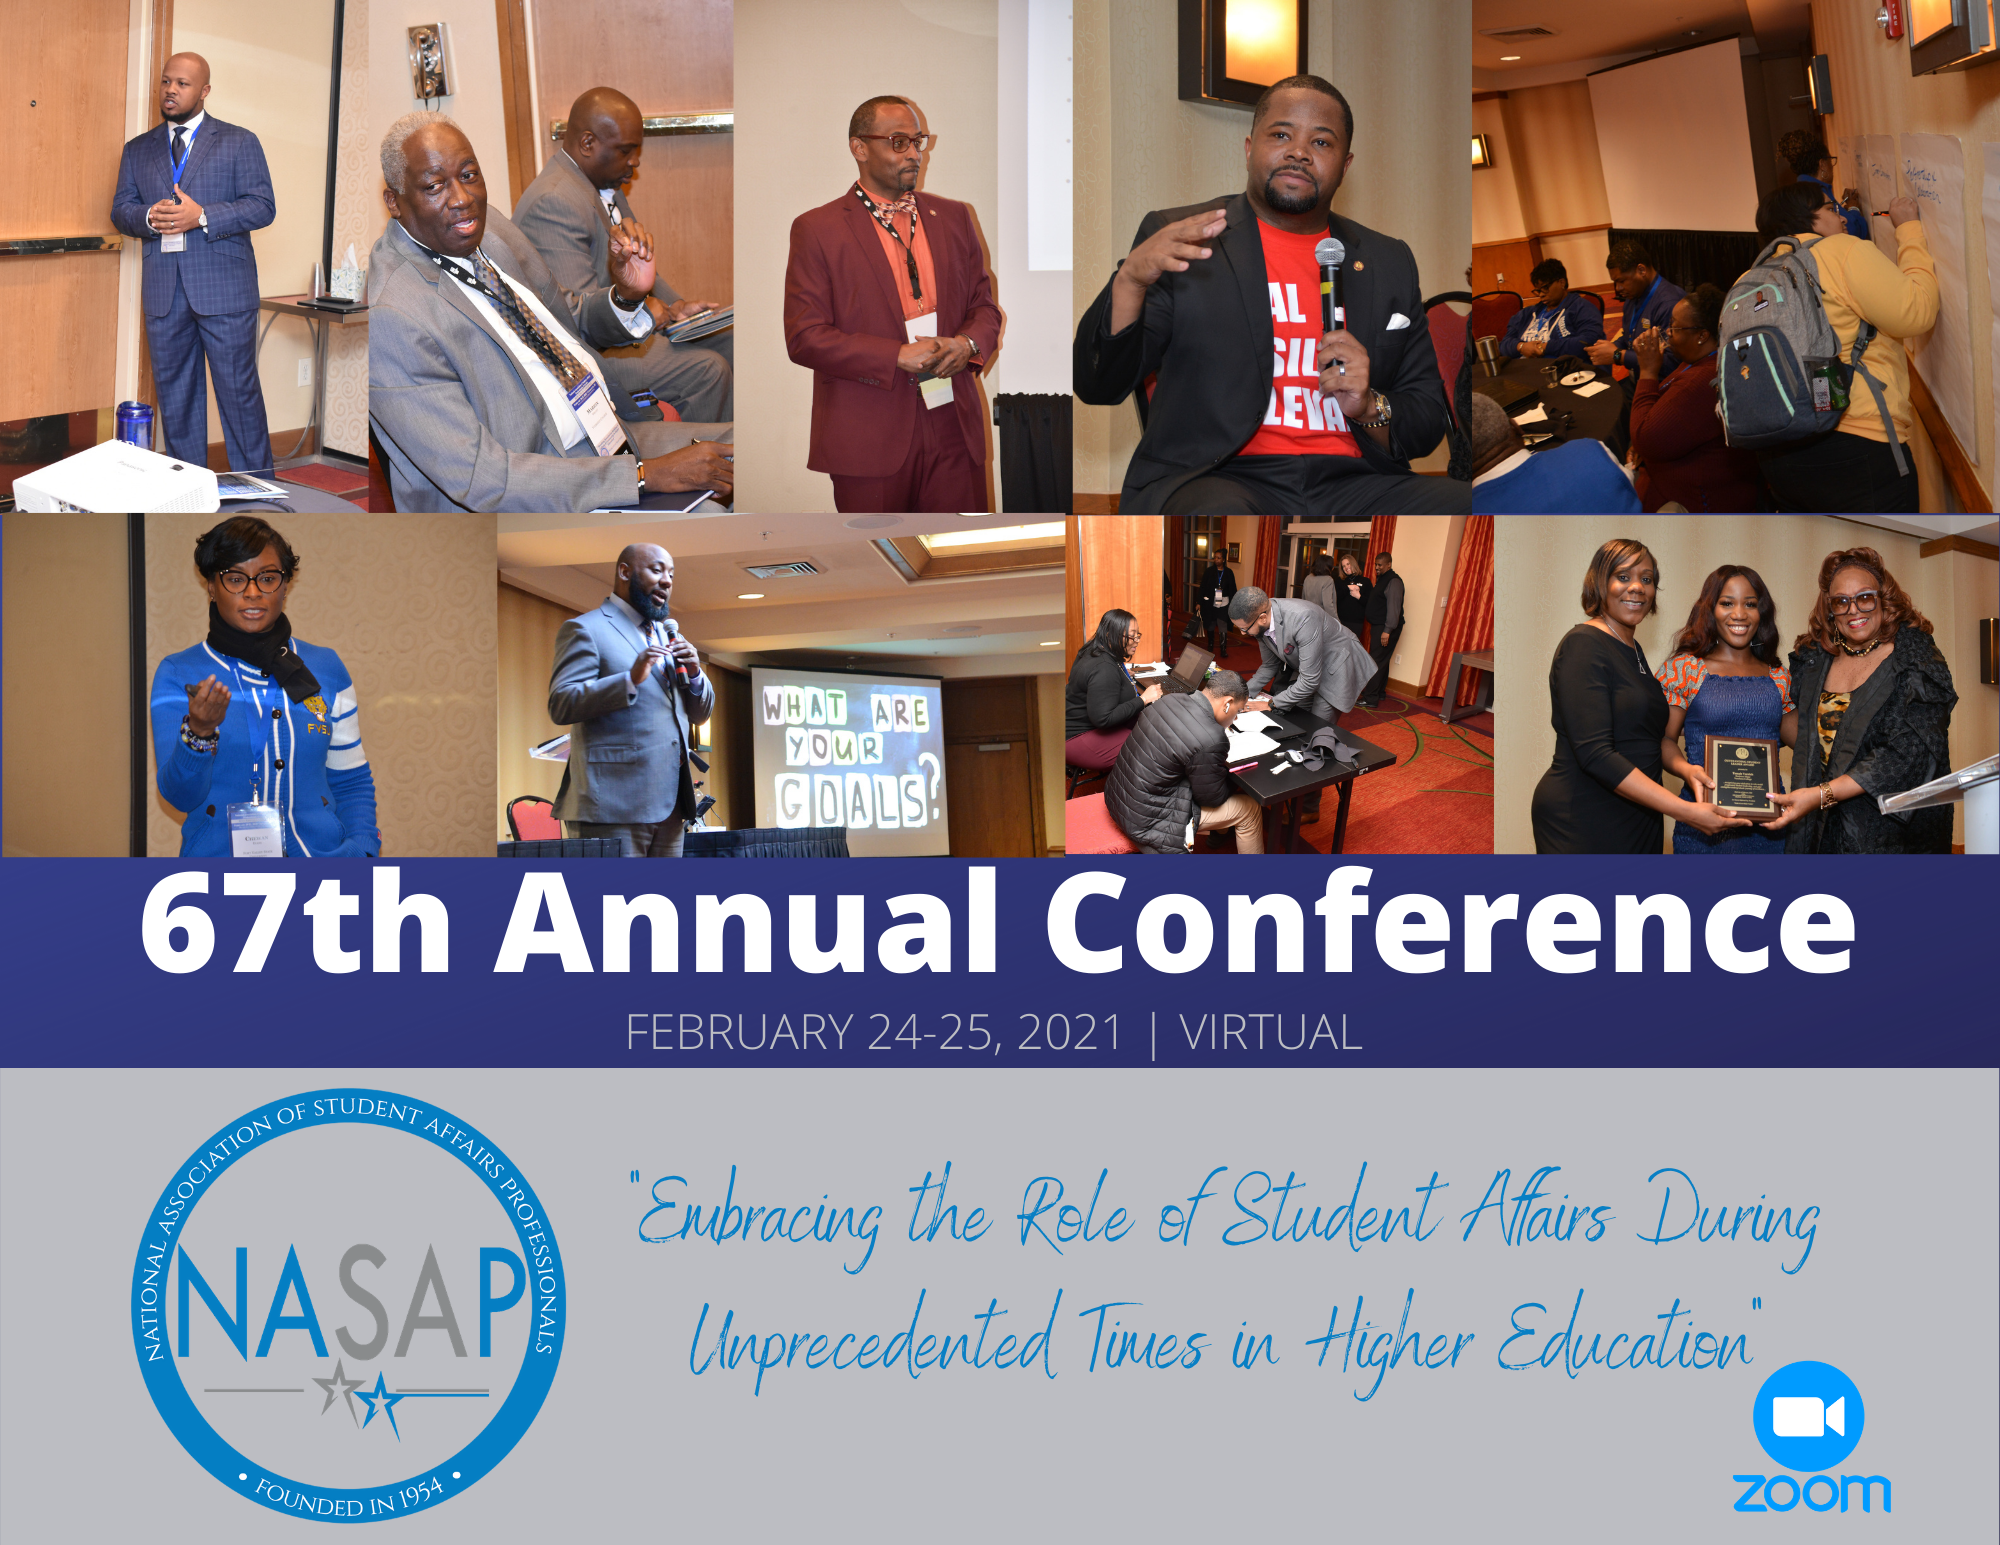 NASAP 2021 Annual Conference flyer